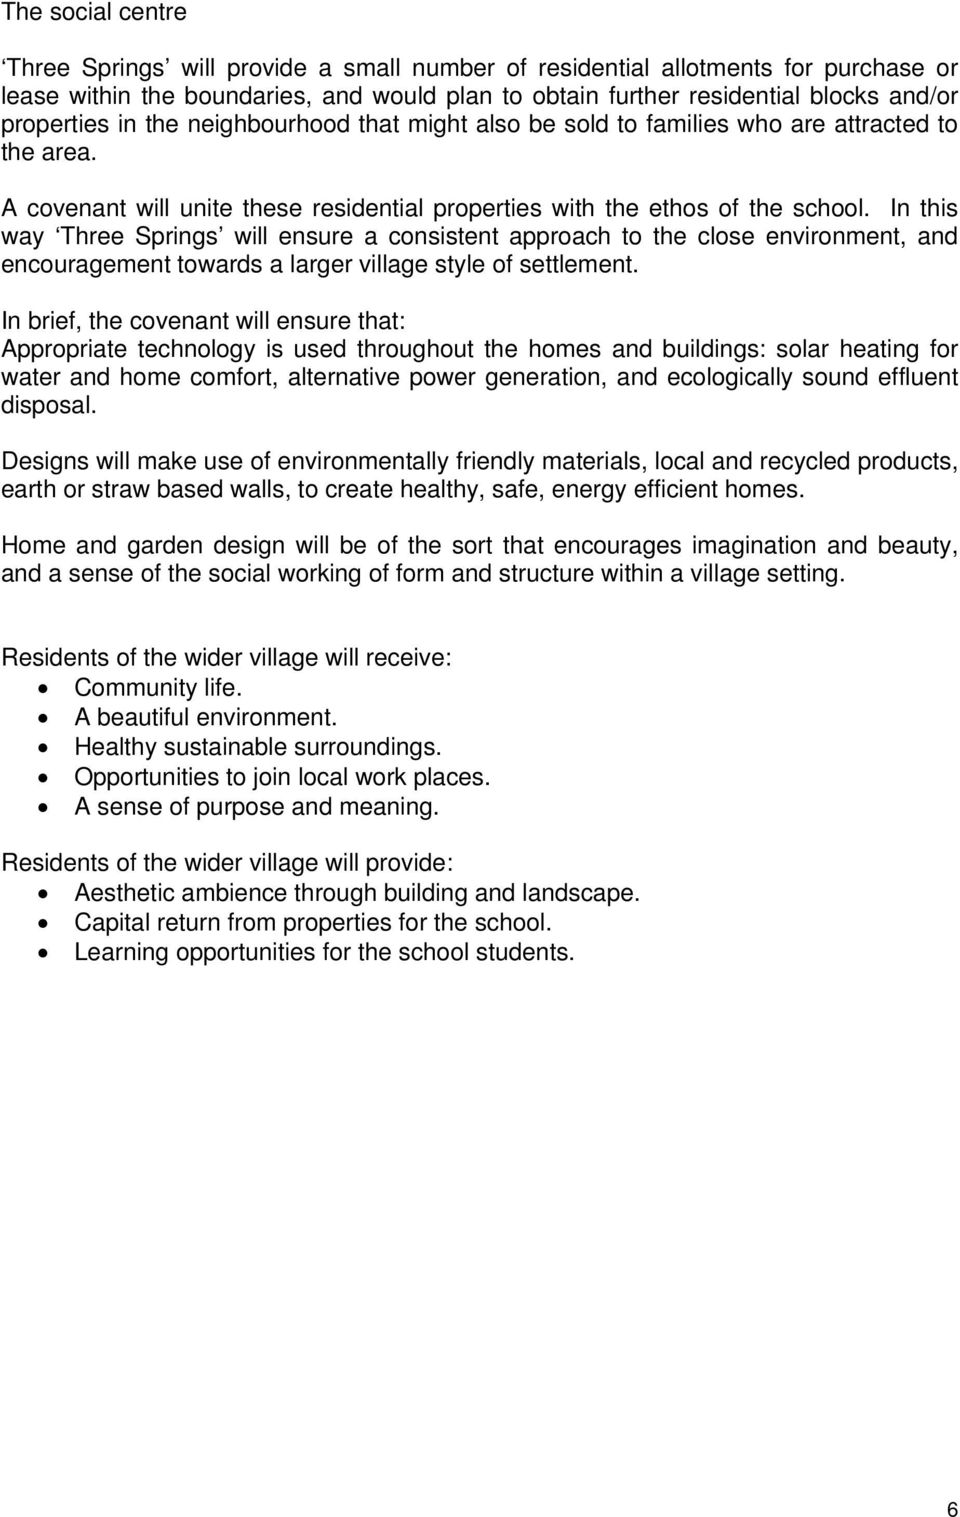 In this way Three Springs will ensure a consistent approach to the close environment, and encouragement towards a larger village style of settlement.